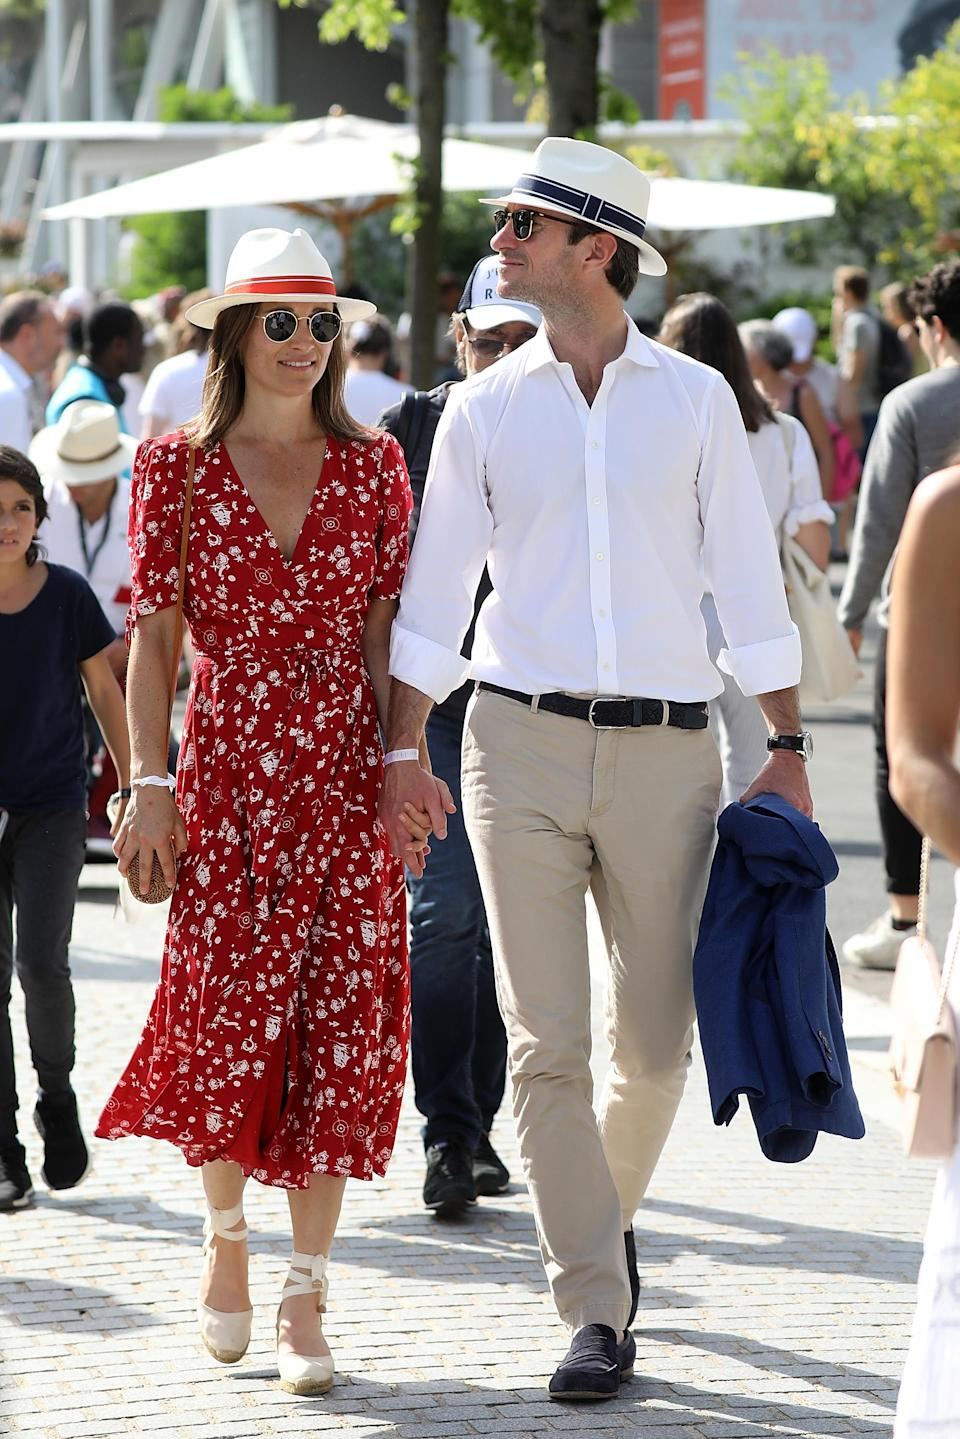 Pippa Middleton and James Matthews wear matching Fedora hats to the French Open. [Photo: Getty]